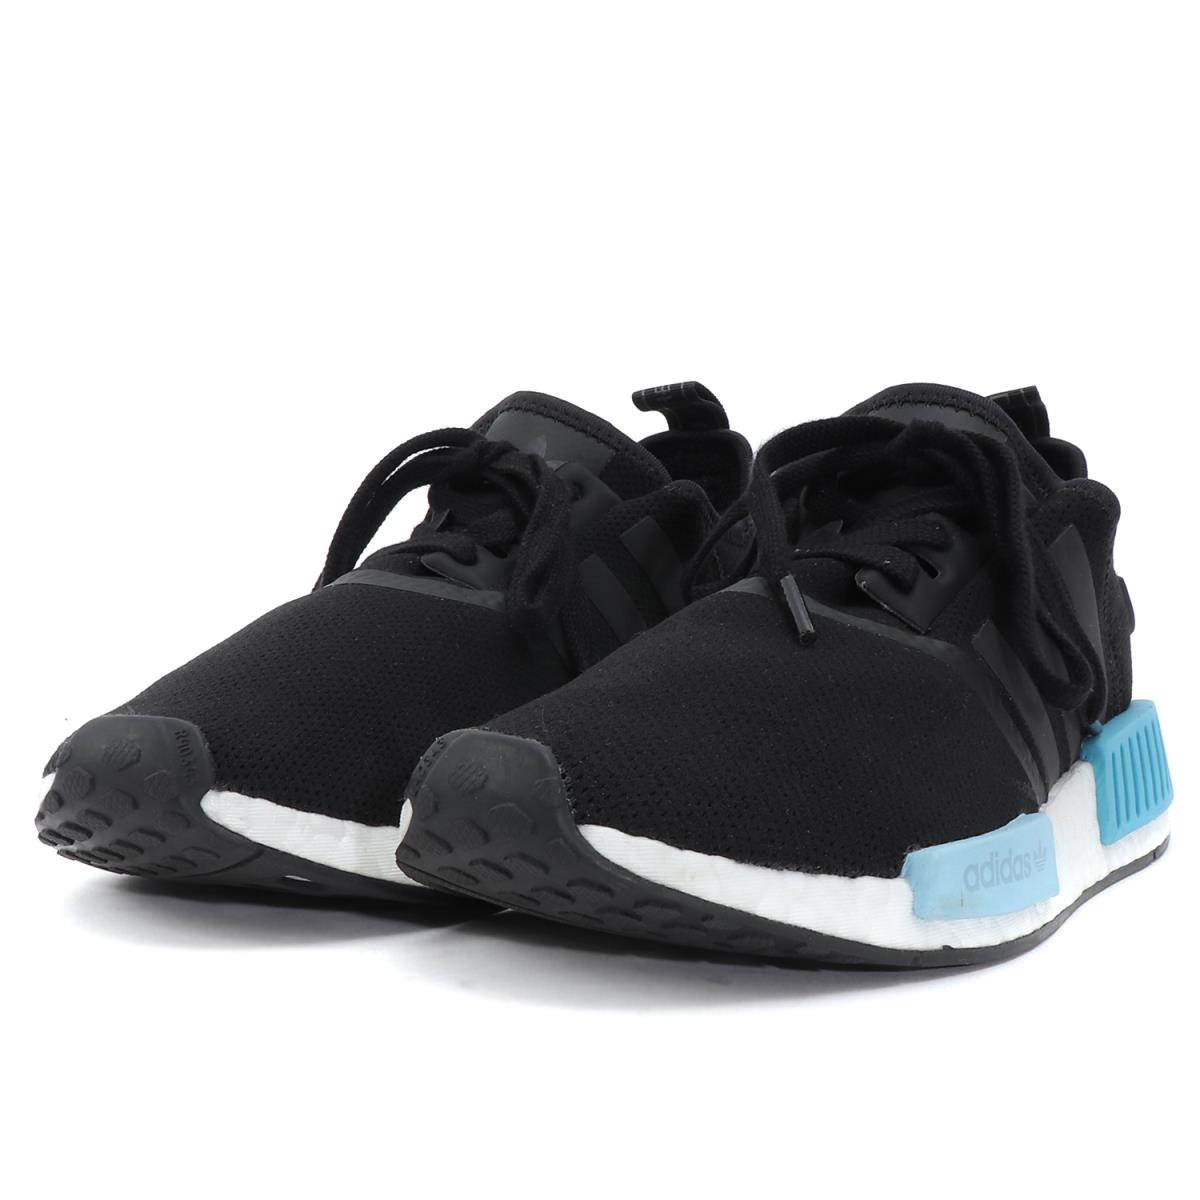 33d4cca46 BEEGLE by Boo-Bee  adidas (Adidas) 17A W NMD R1 W (BY9951) core ...